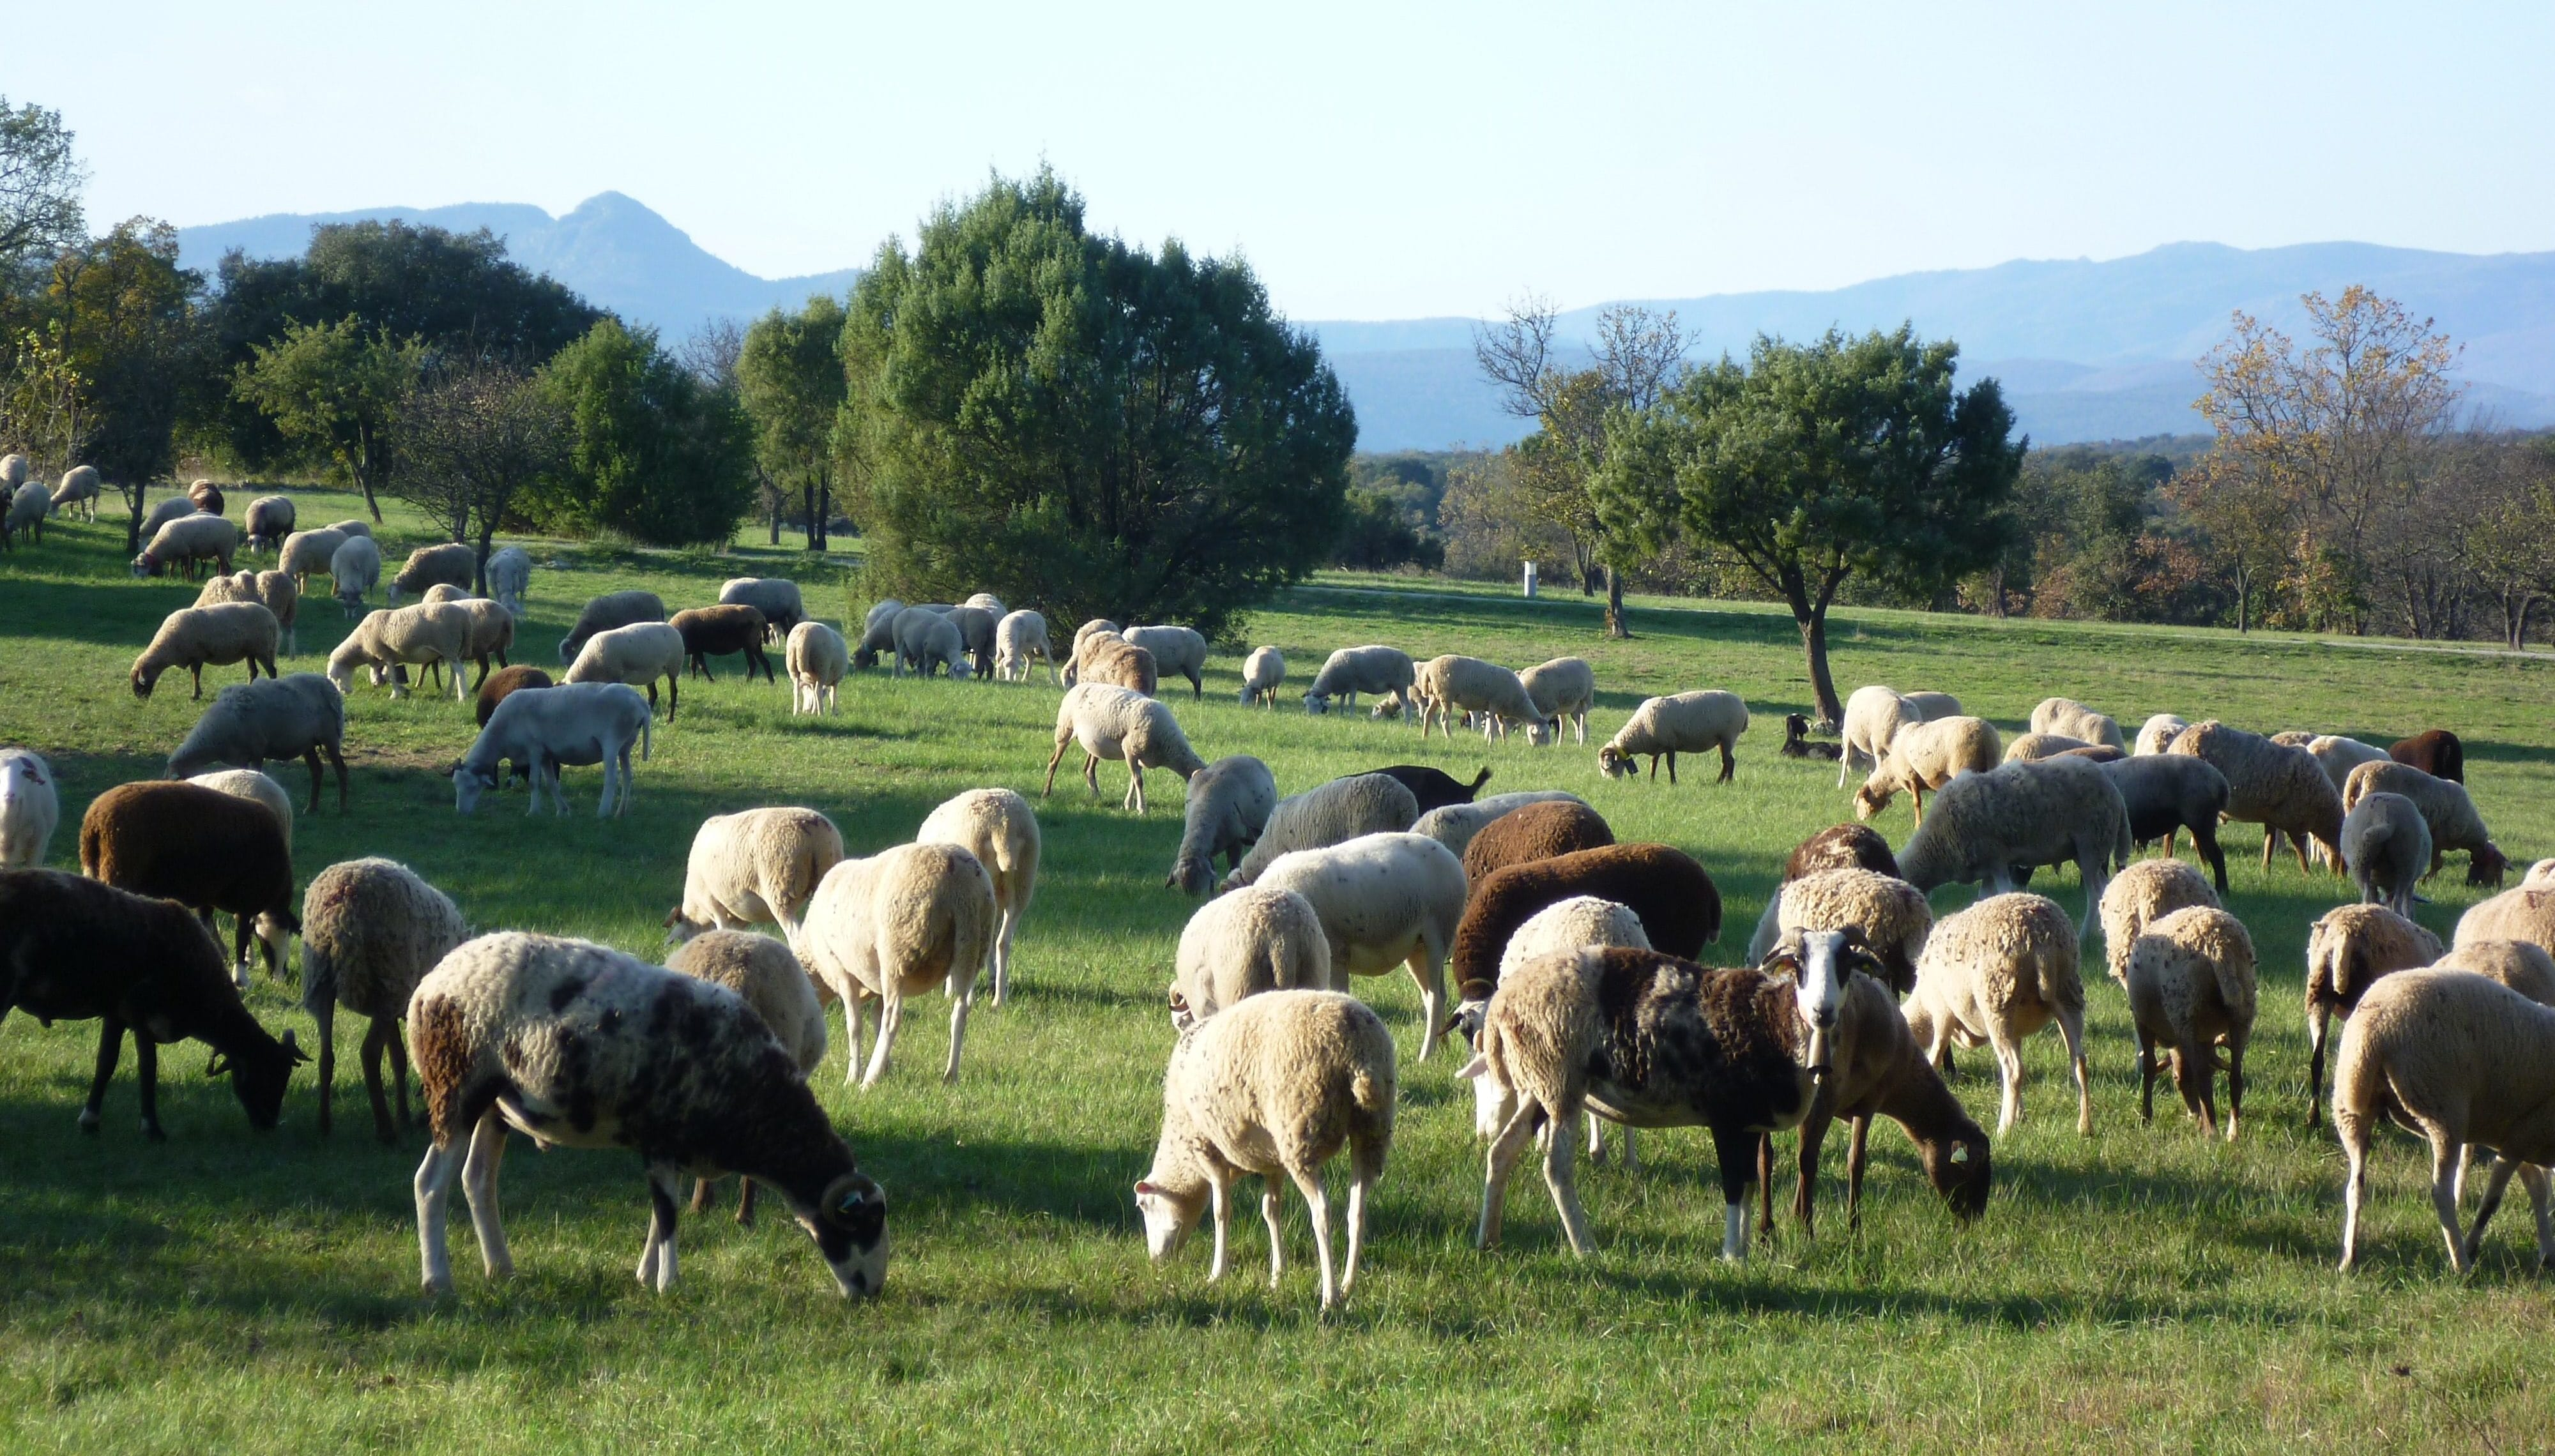 Moutons dans un champs. Photo : CCGPSL